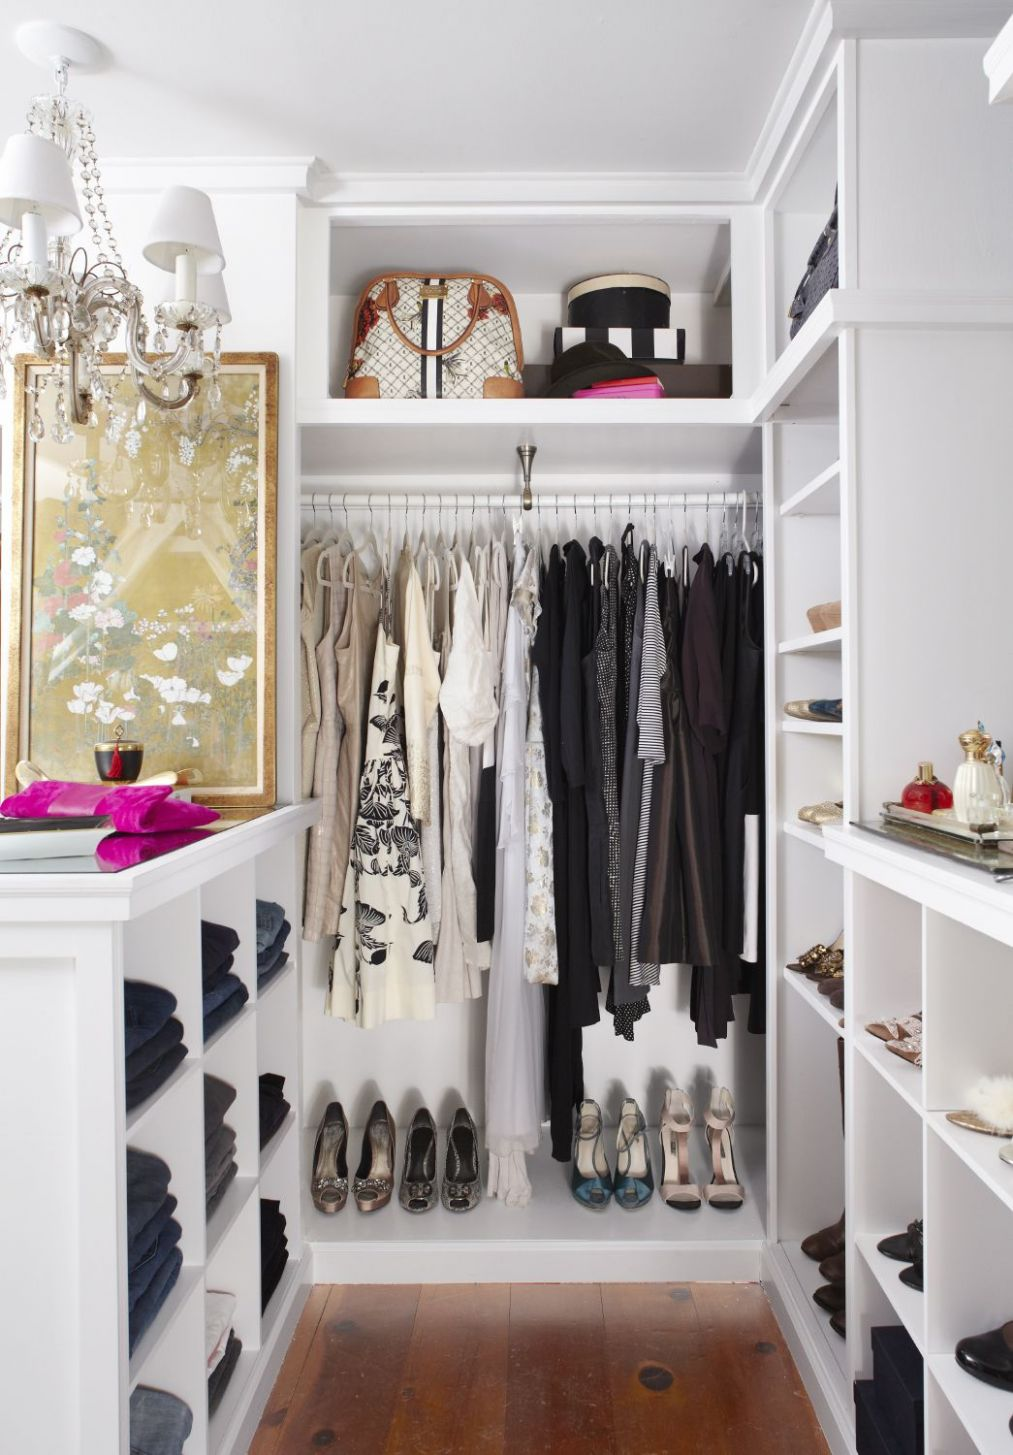 9 Small Walk in Closet Ideas and Organizer Designs | Dream ..